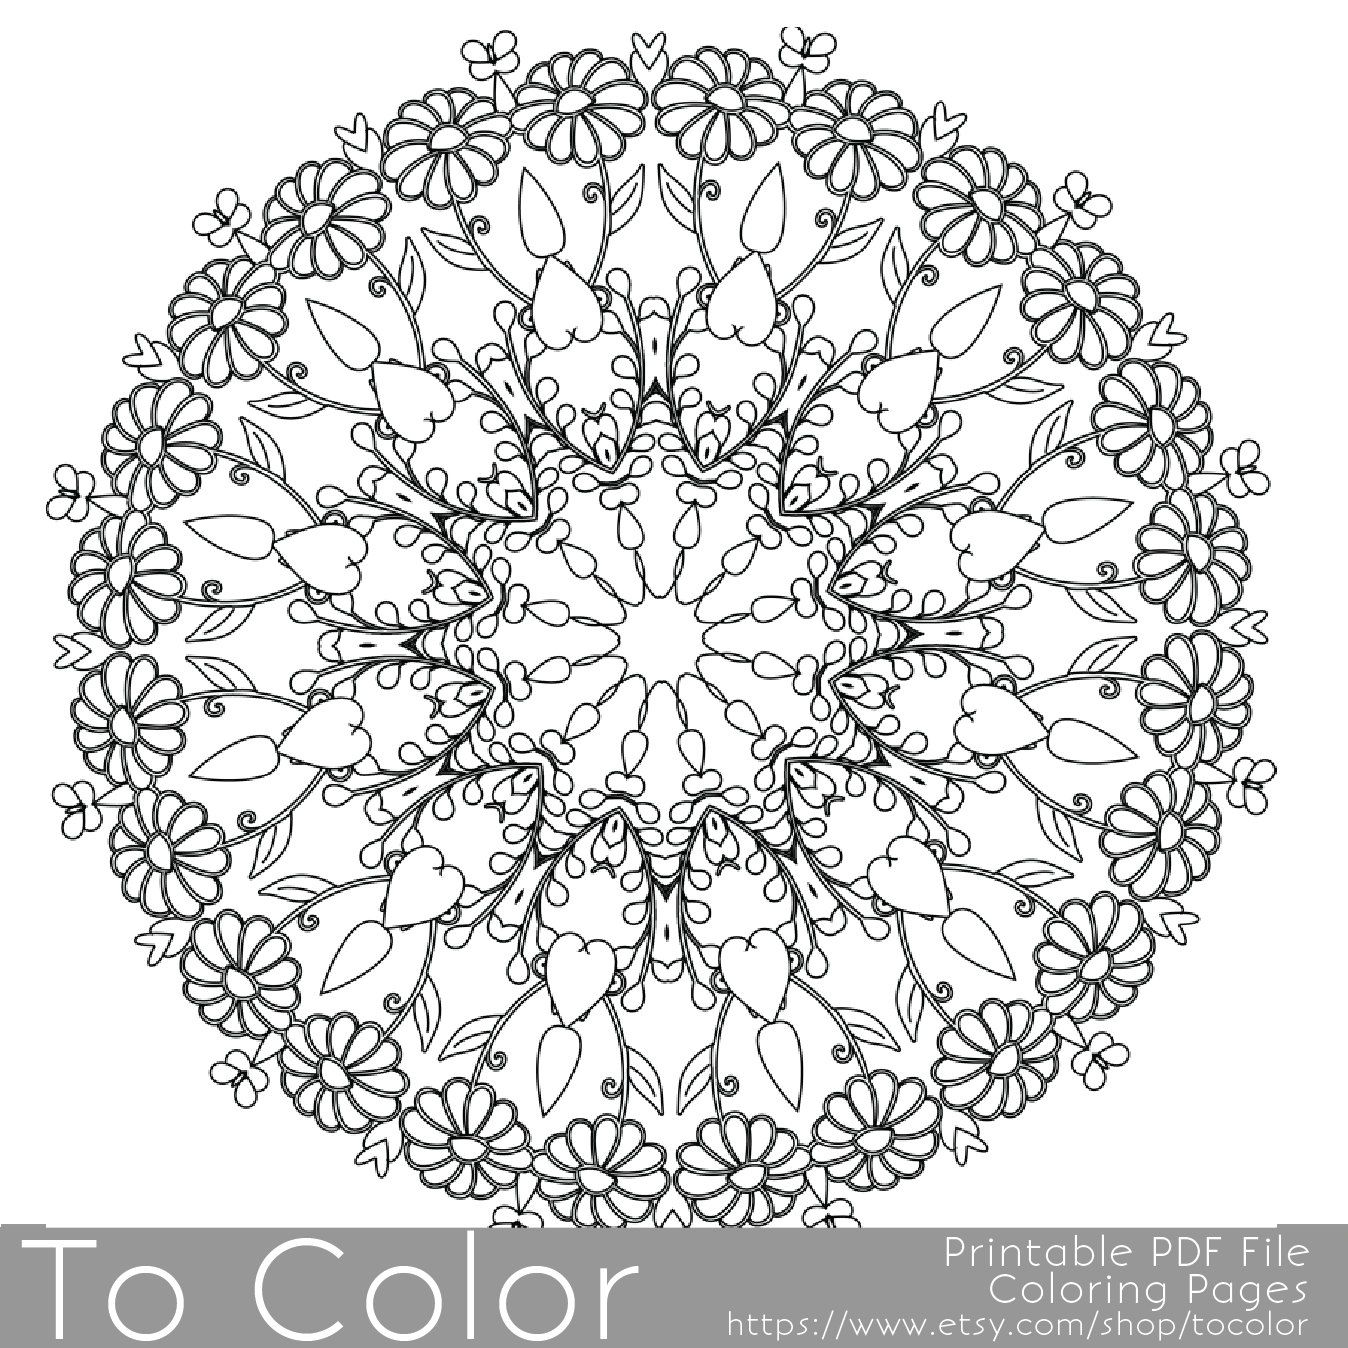 Pin by Kate Pullen on Free Coloring Pages for Coloring